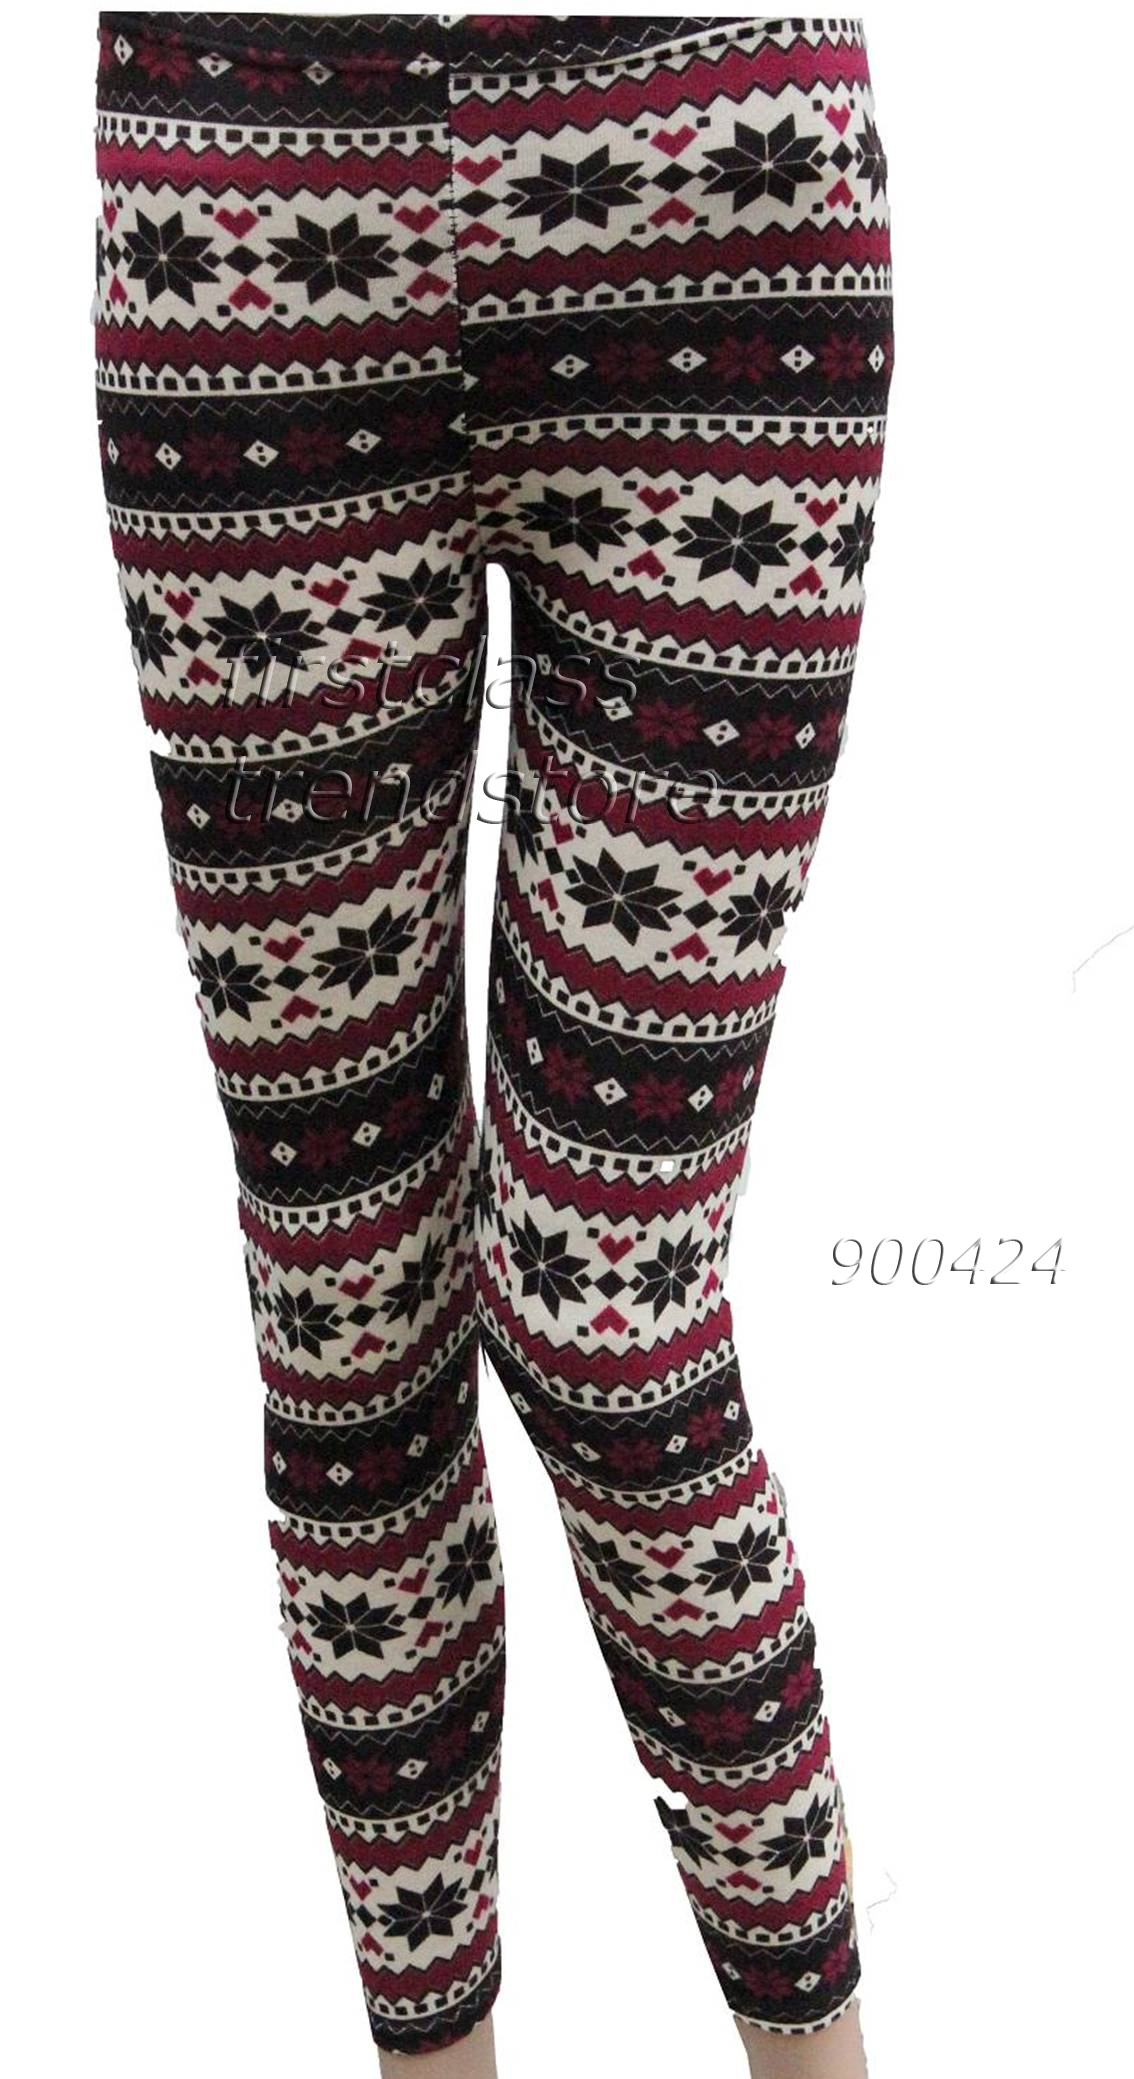 Winterleggings * Norweger-Leggings Gr. S / M (34/36 - 38) Leggins Hose | eBay